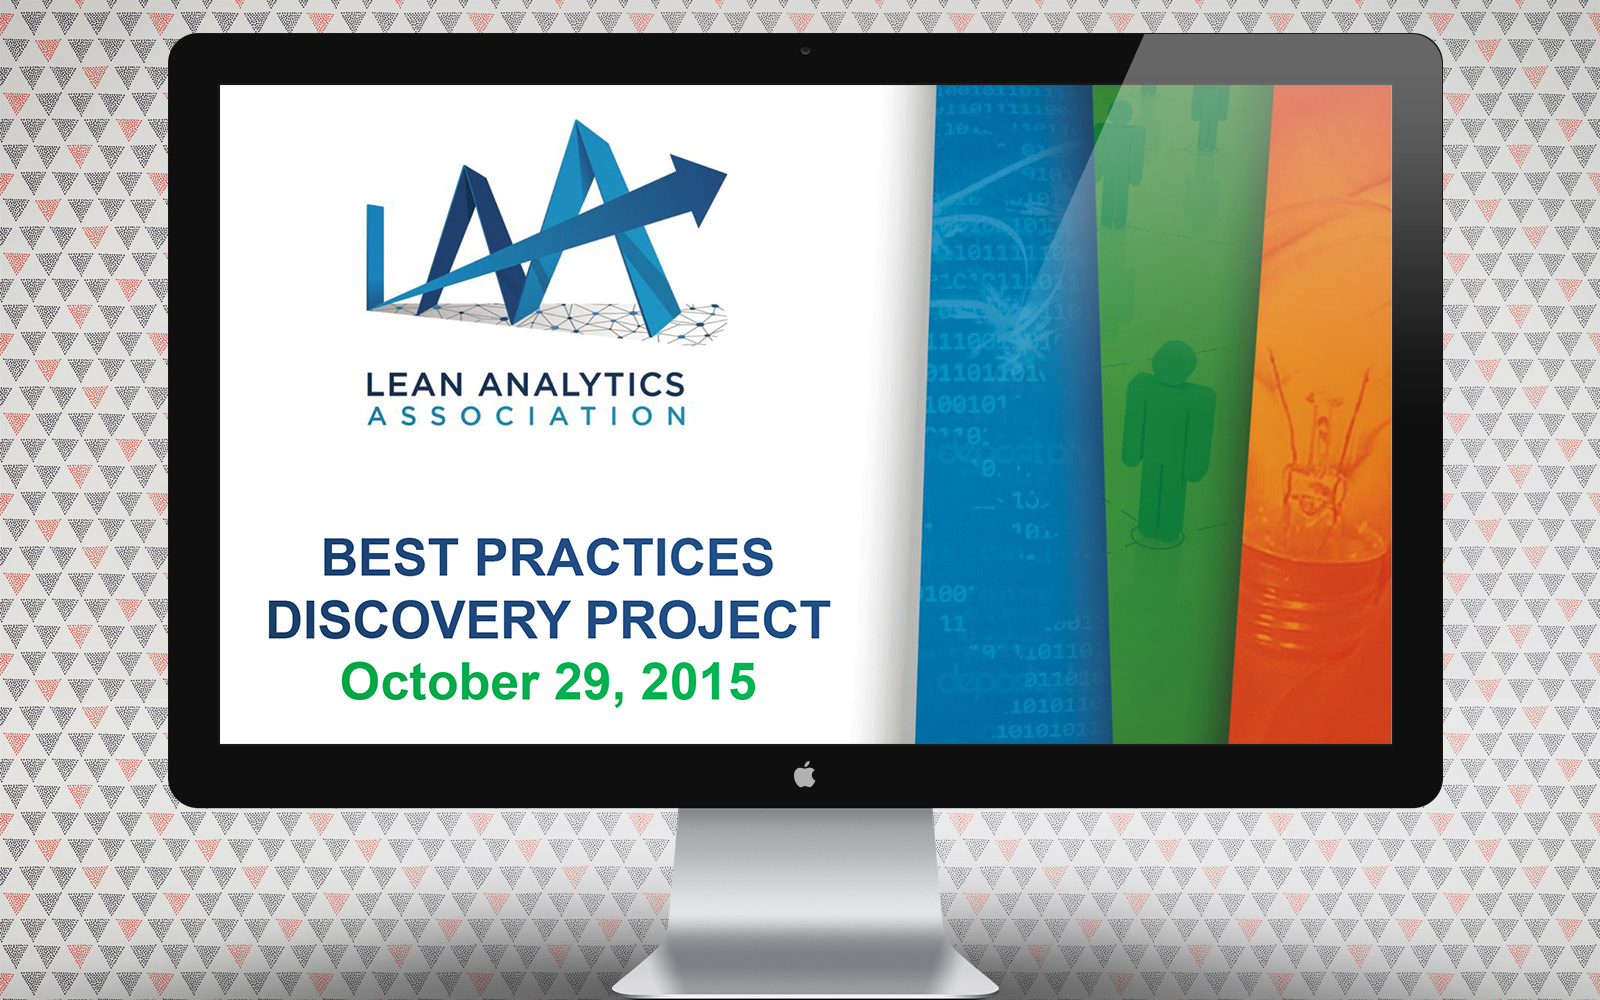 laa-library_forum2015-bestpractices